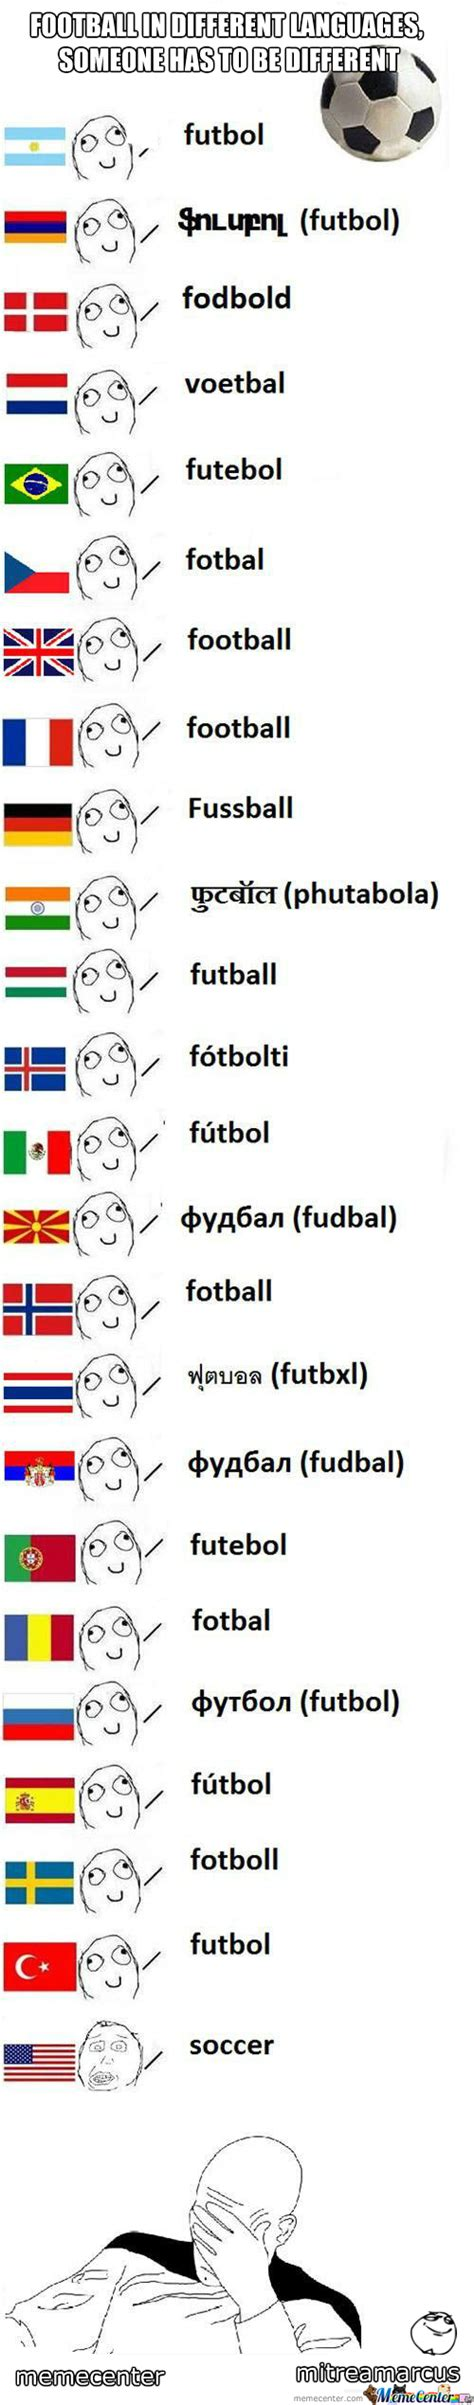 Different Languages Meme - football in different languages sorry murica by mitreamarcus meme center